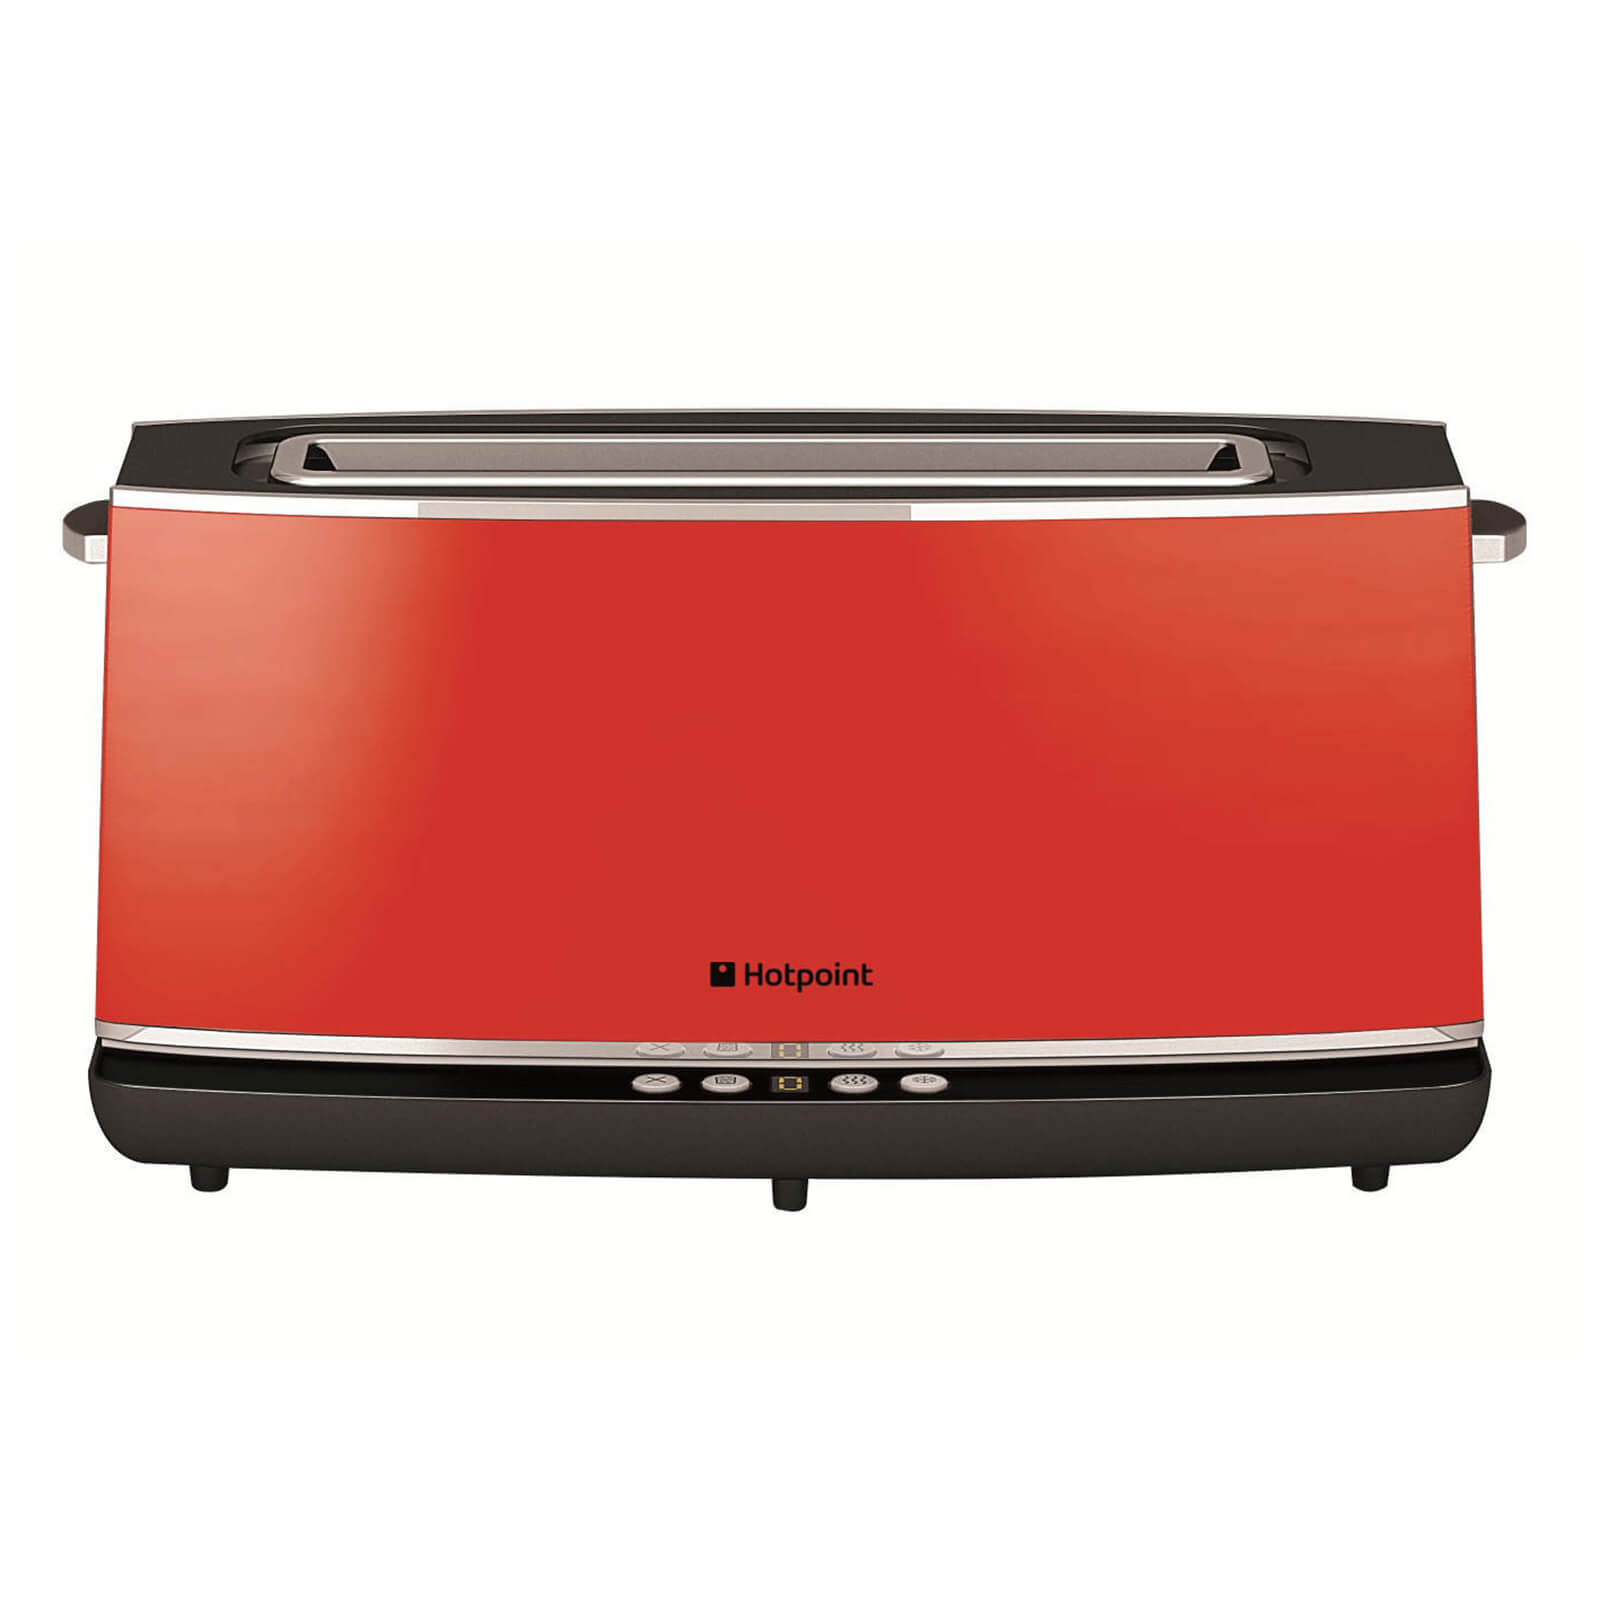 Hotpoint TT12EAR0 Long Slot Digital Toaster